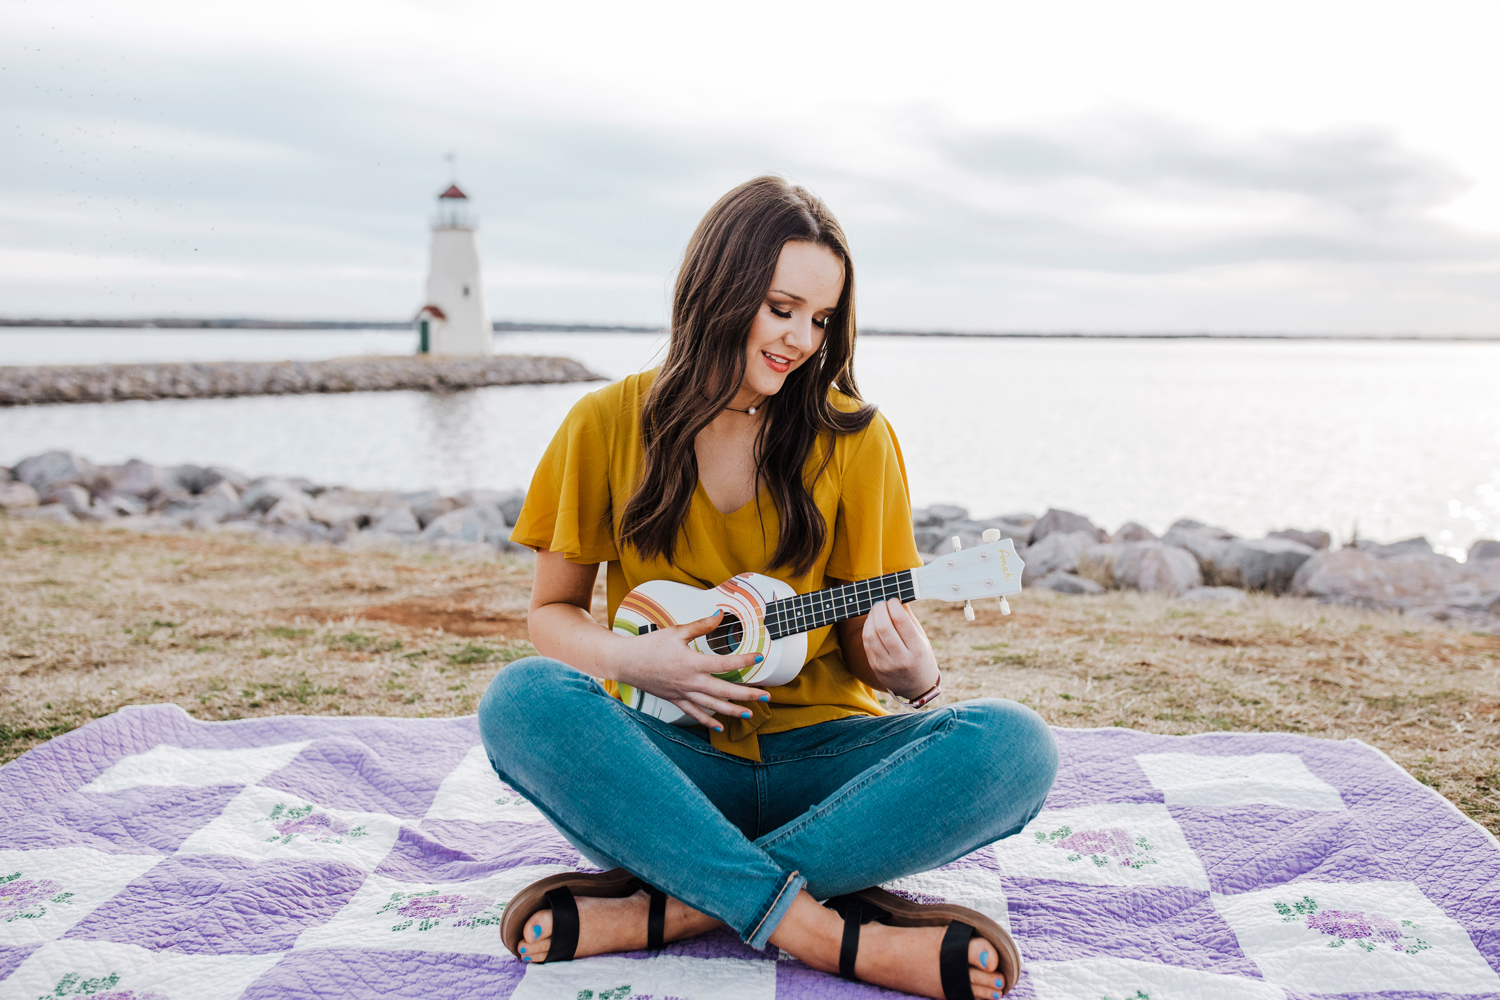 High school senior girl wearing jeans and a yellow top, sitting on quilt and playing the ukulele with the Oklahoma City Lighthouse behind her at Lake Hefner by Amanda Lynn Photography.